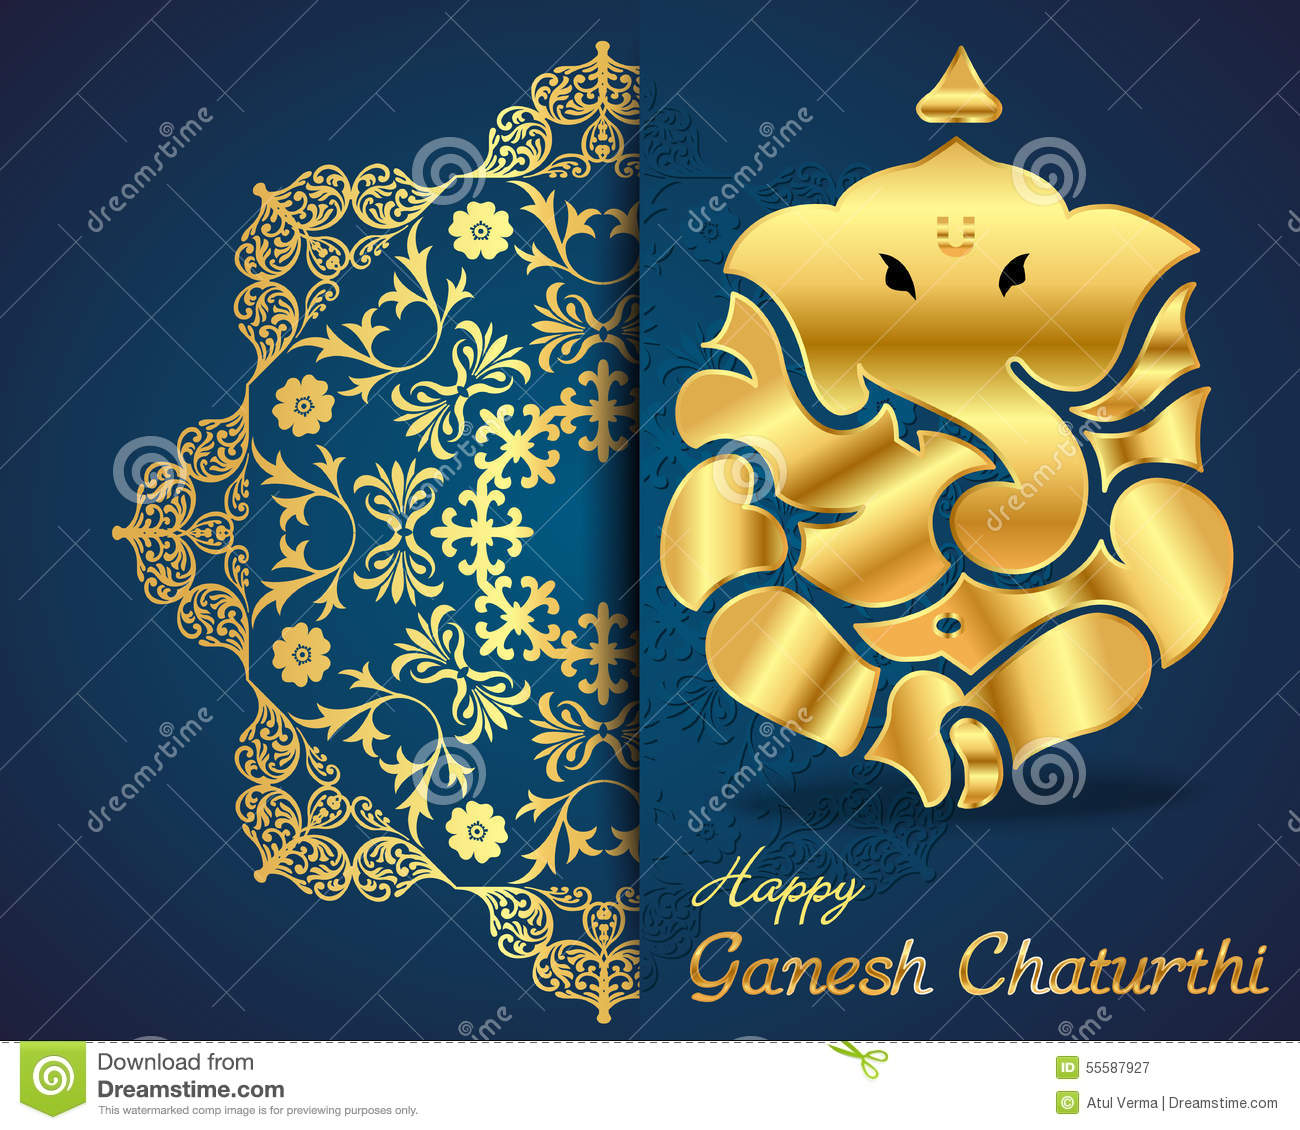 Invitation letter format for ganesh puja all the best invitation puja invitation letter sle premium template design stopboris Choice Image